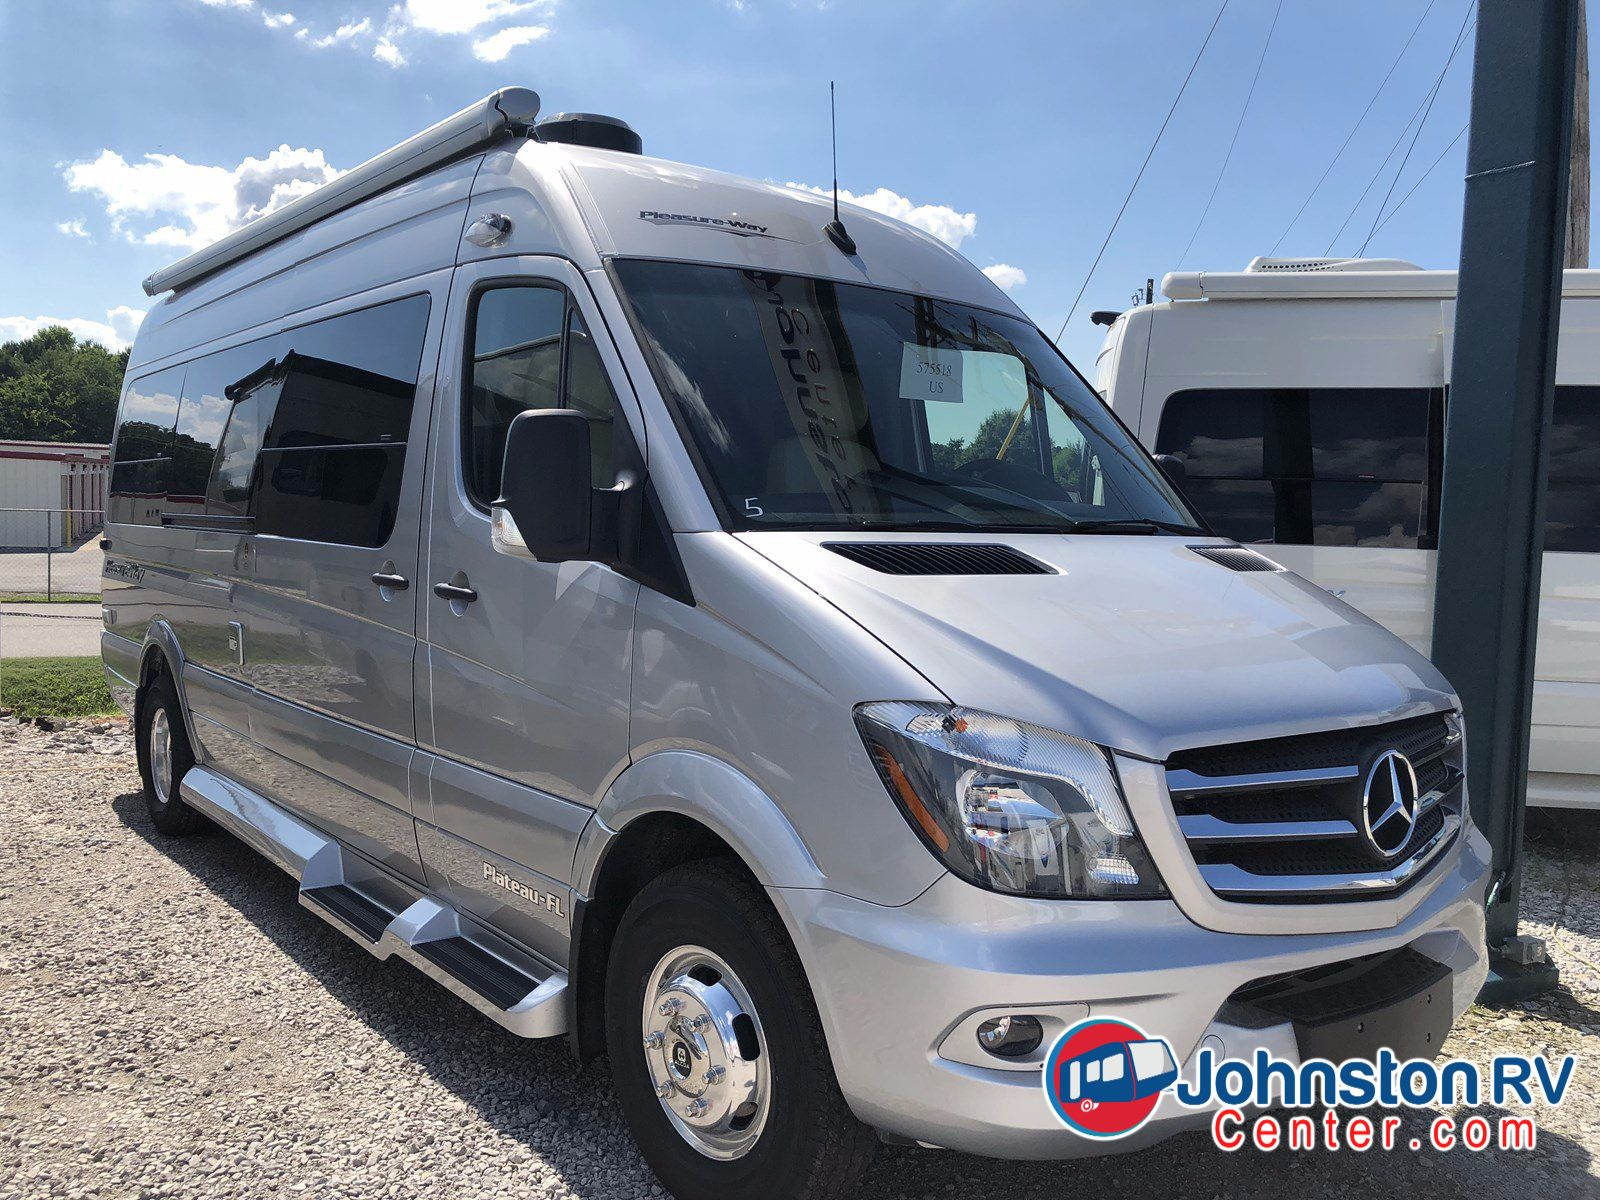 Backed By Rv Warranty Forever The Only True Lifetime Warranty In North Alabama Rv Camping Fifthwheel Traveltrailer Mot Rvs For Sale Pleasure Way Decatur